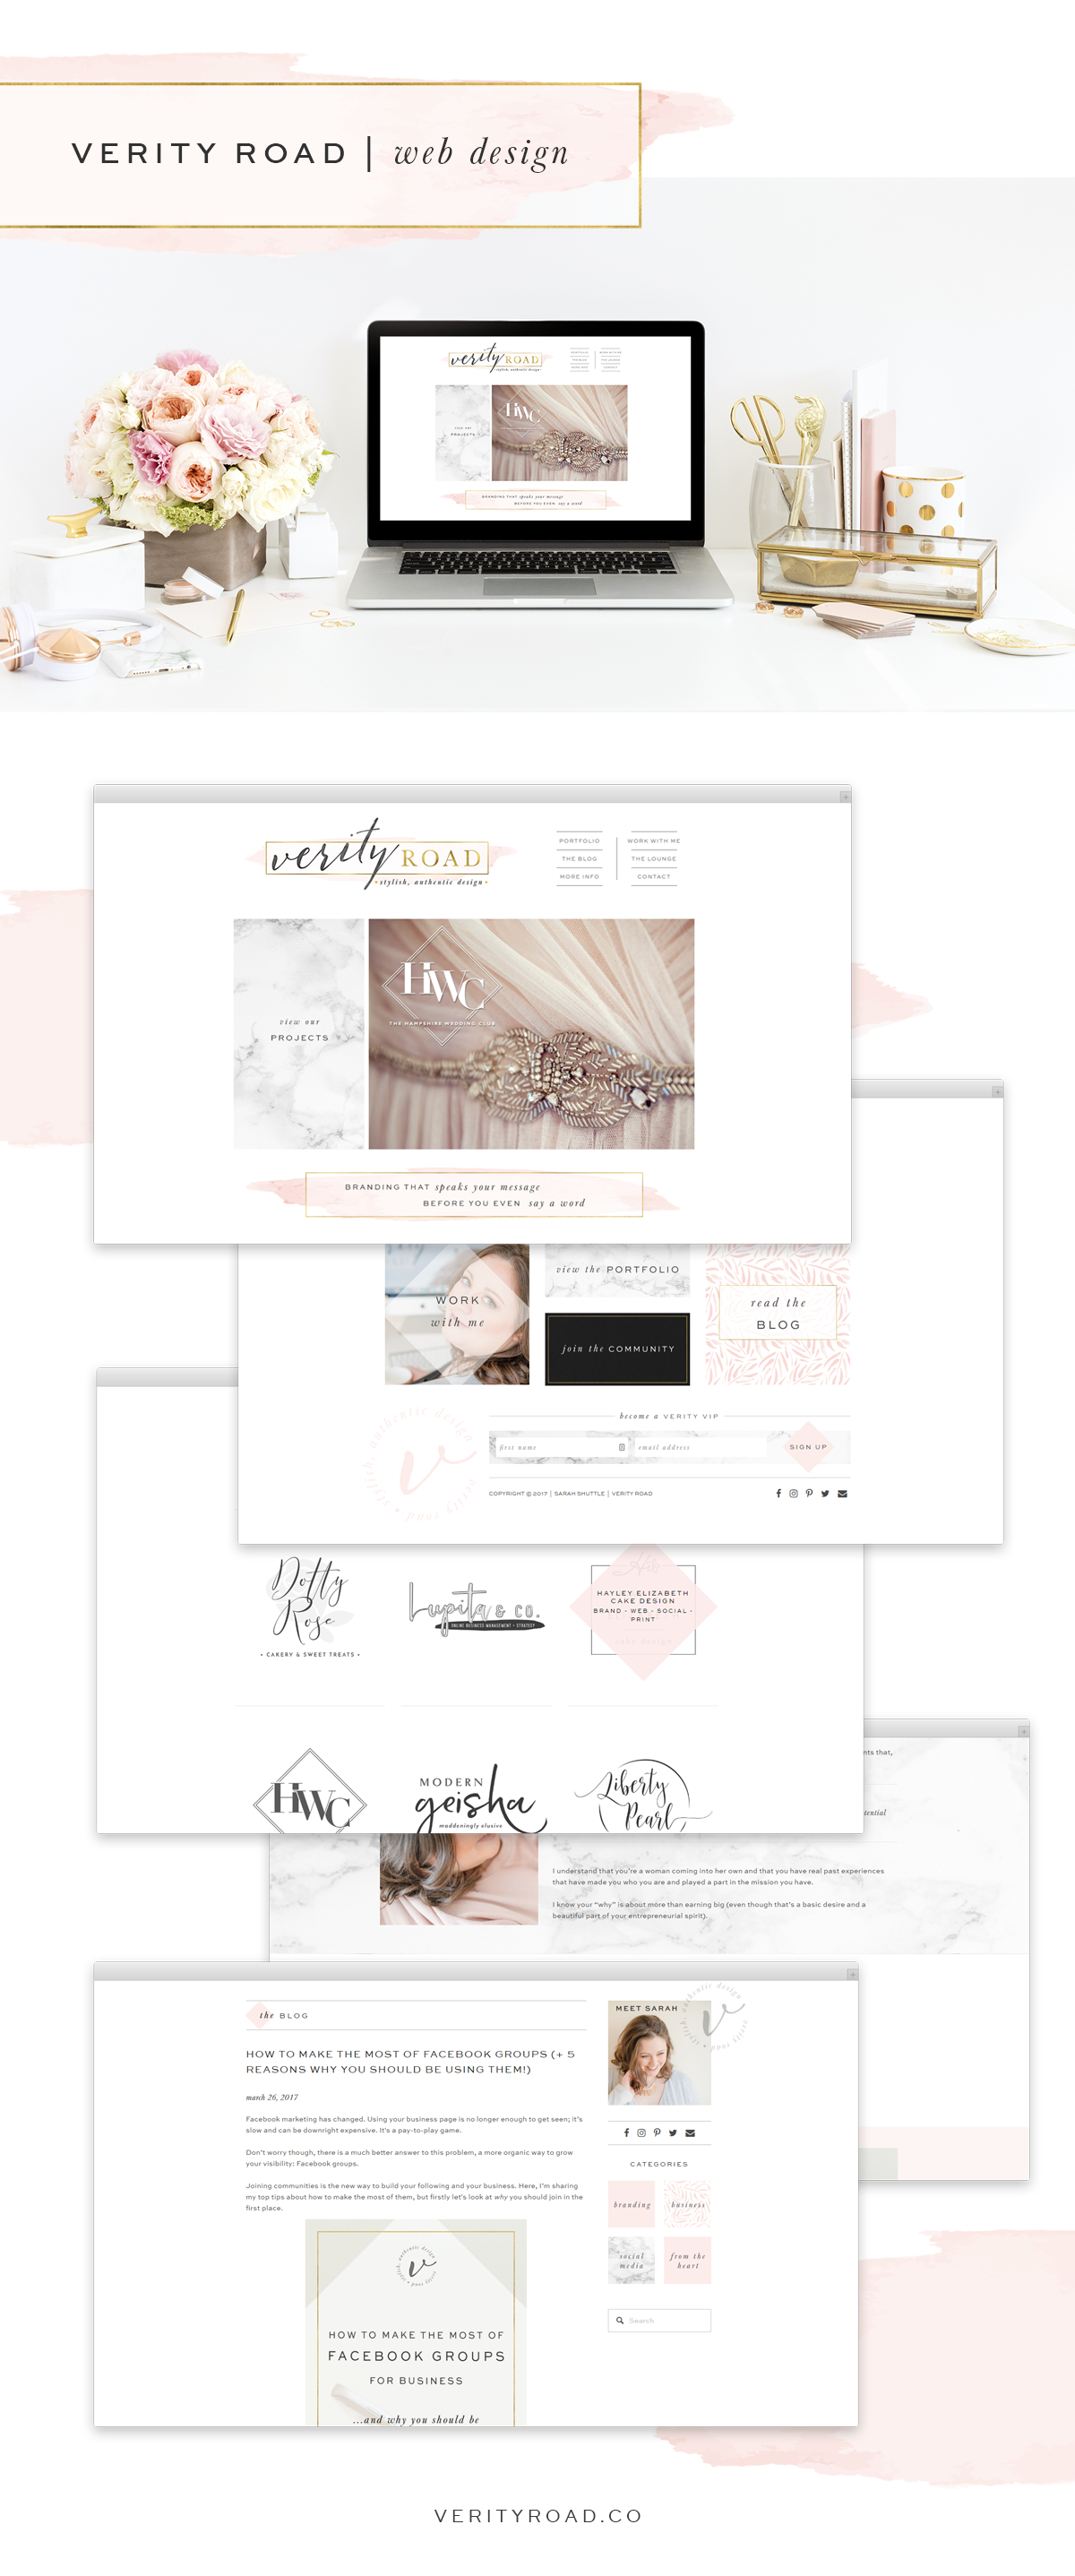 Web design for verity road, luxury brand styling and web design for female entrepreneurs. Luxury branding, feminine branding, feminine business, brand style guide, logo design, submark, brand elements, calligraphy, sans serif, black, latte, blush, pink, gold, color palette, pattern, marble, watercolor brand board, branding and website design.